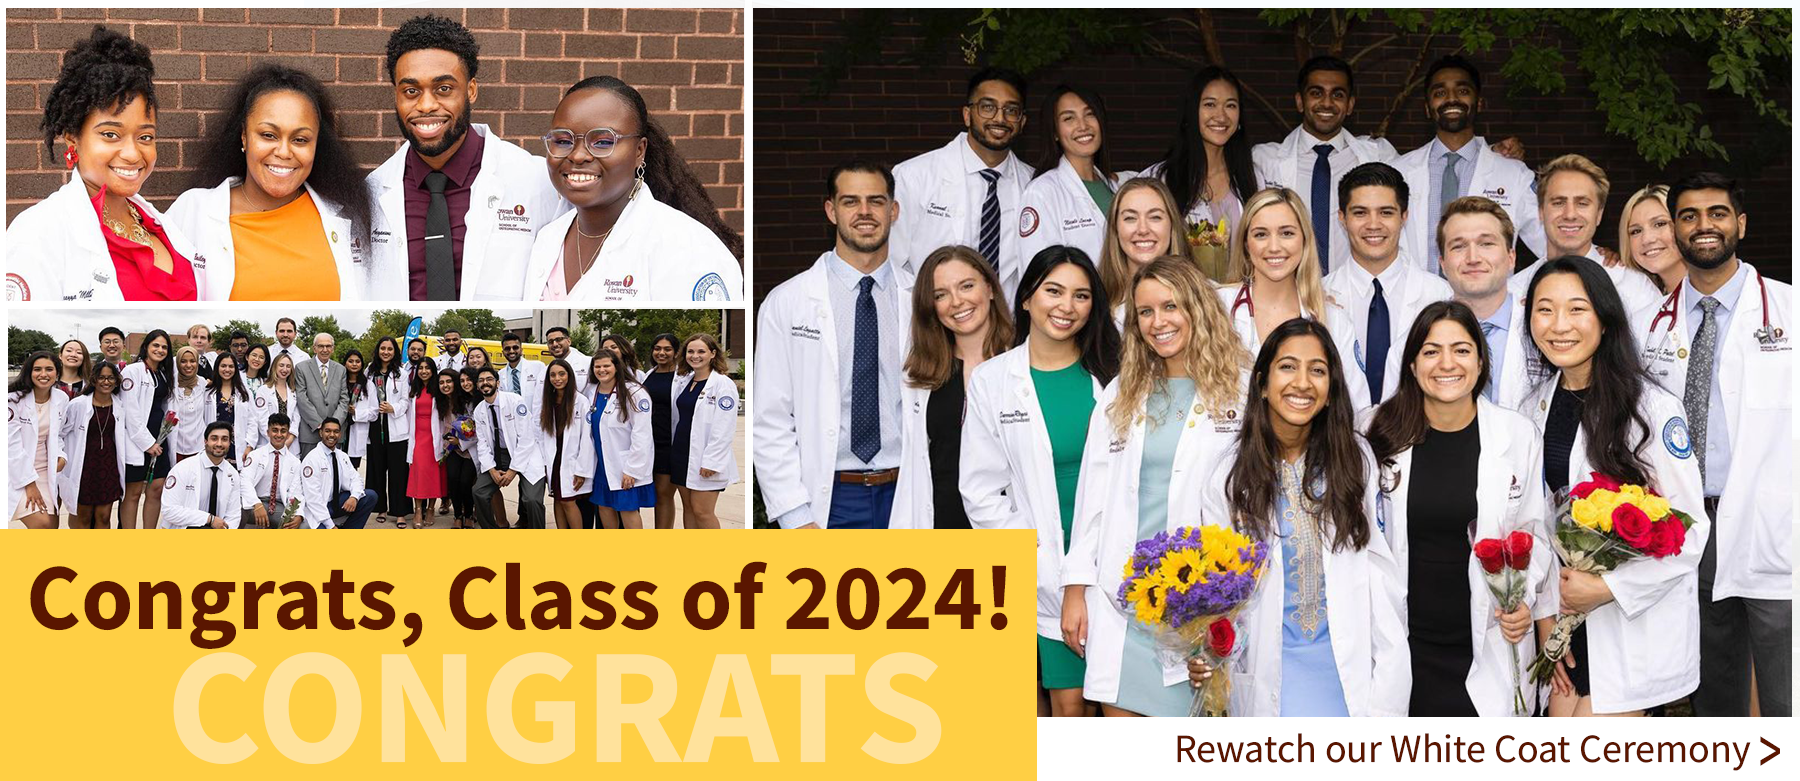 Welcome to the Class of 2024 - Click to watch the White Coat Ceremony